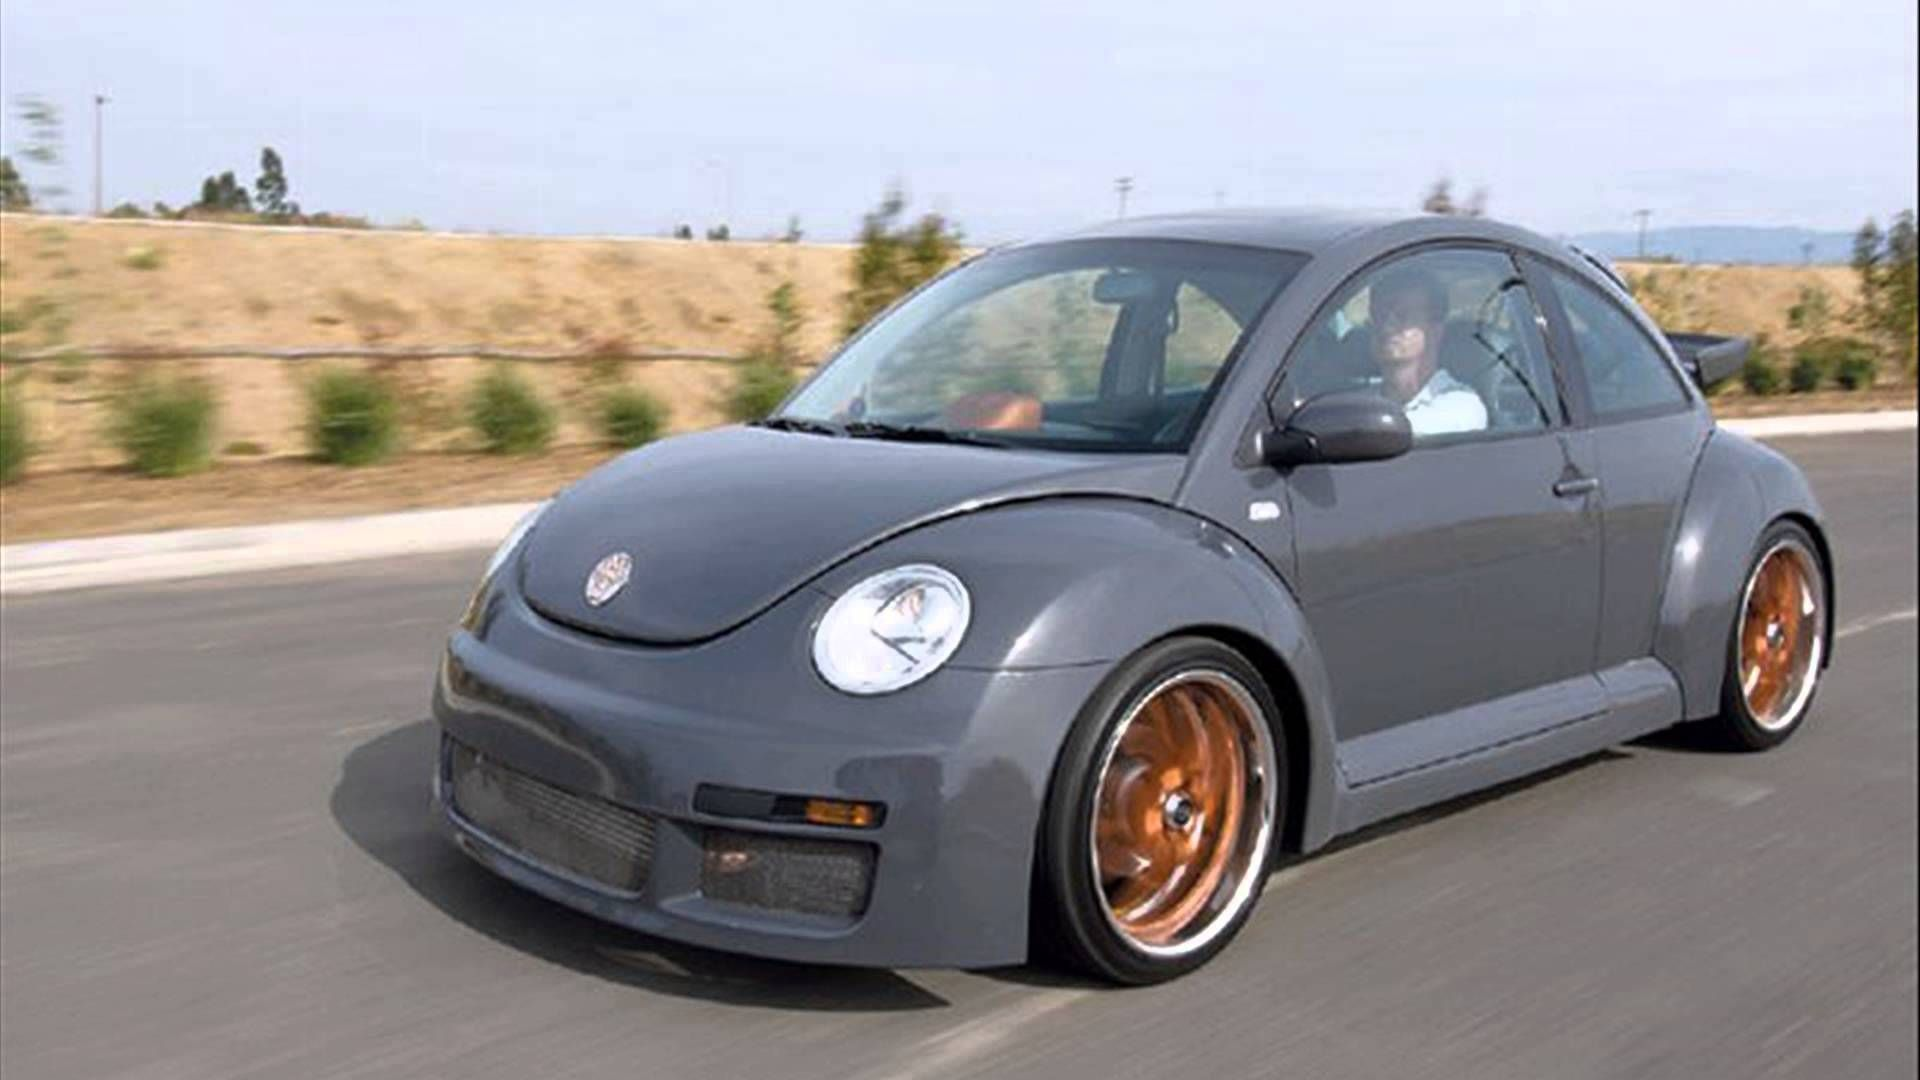 new beetle tuning google search new pinterest beetles vw beetles and volkswagen. Black Bedroom Furniture Sets. Home Design Ideas